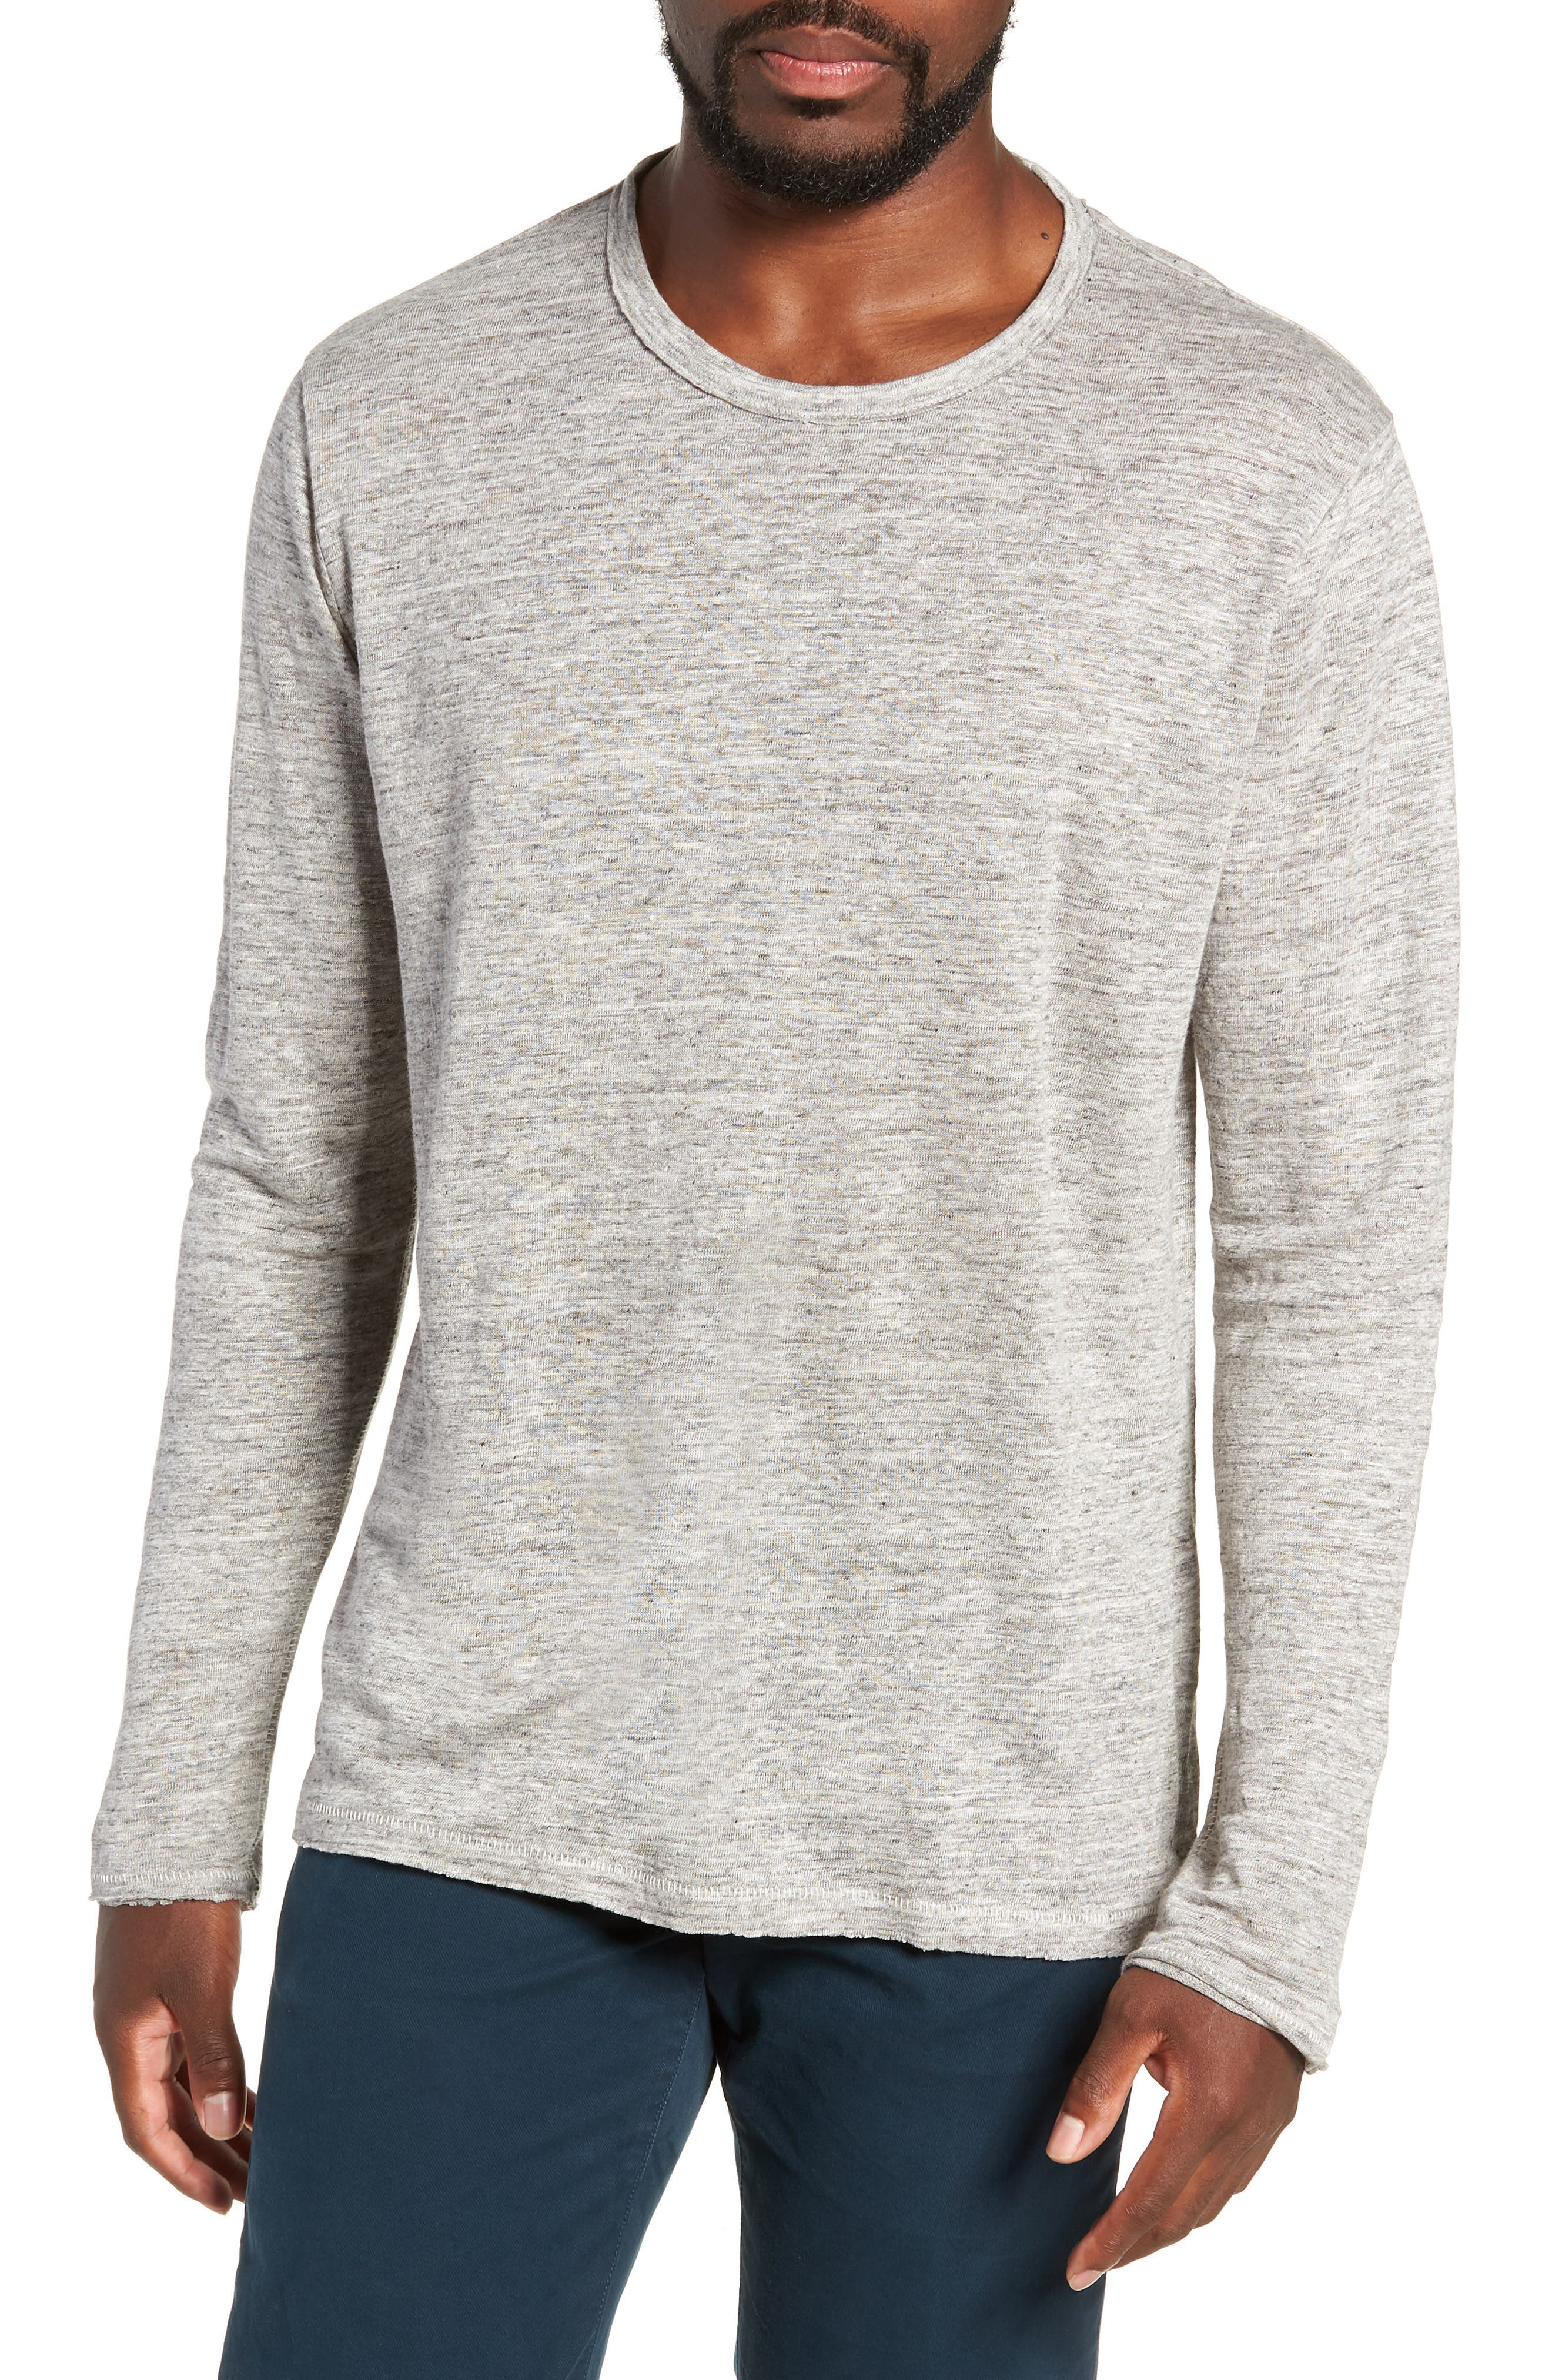 Owen Linen Long Sleeve T-Shirt,                         Main,                         color, 020